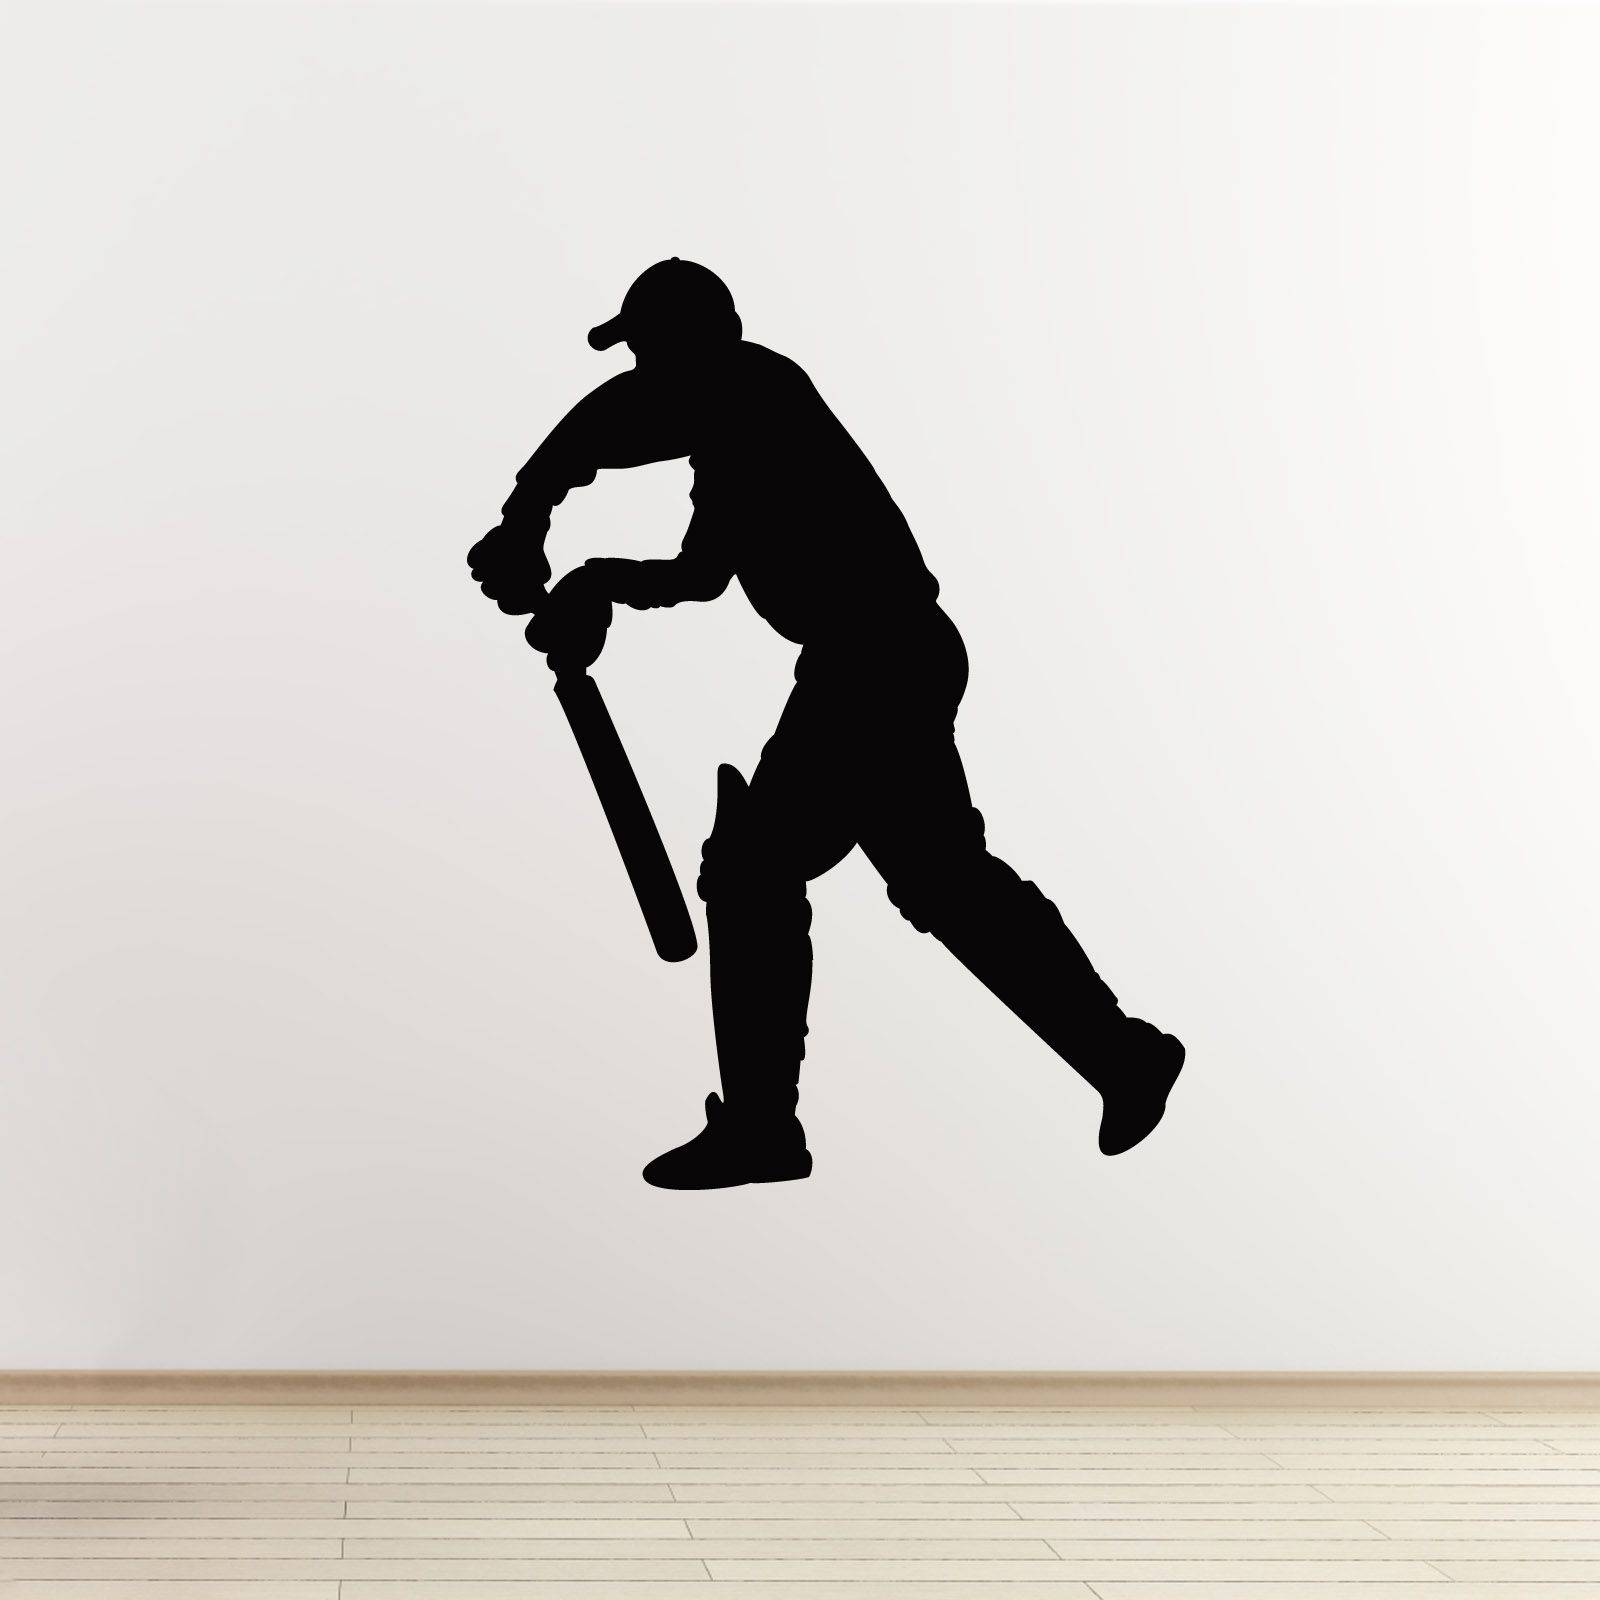 Muurstickers Action Our 39batsman Standing 39 Cricket Wall Sticker Shows The